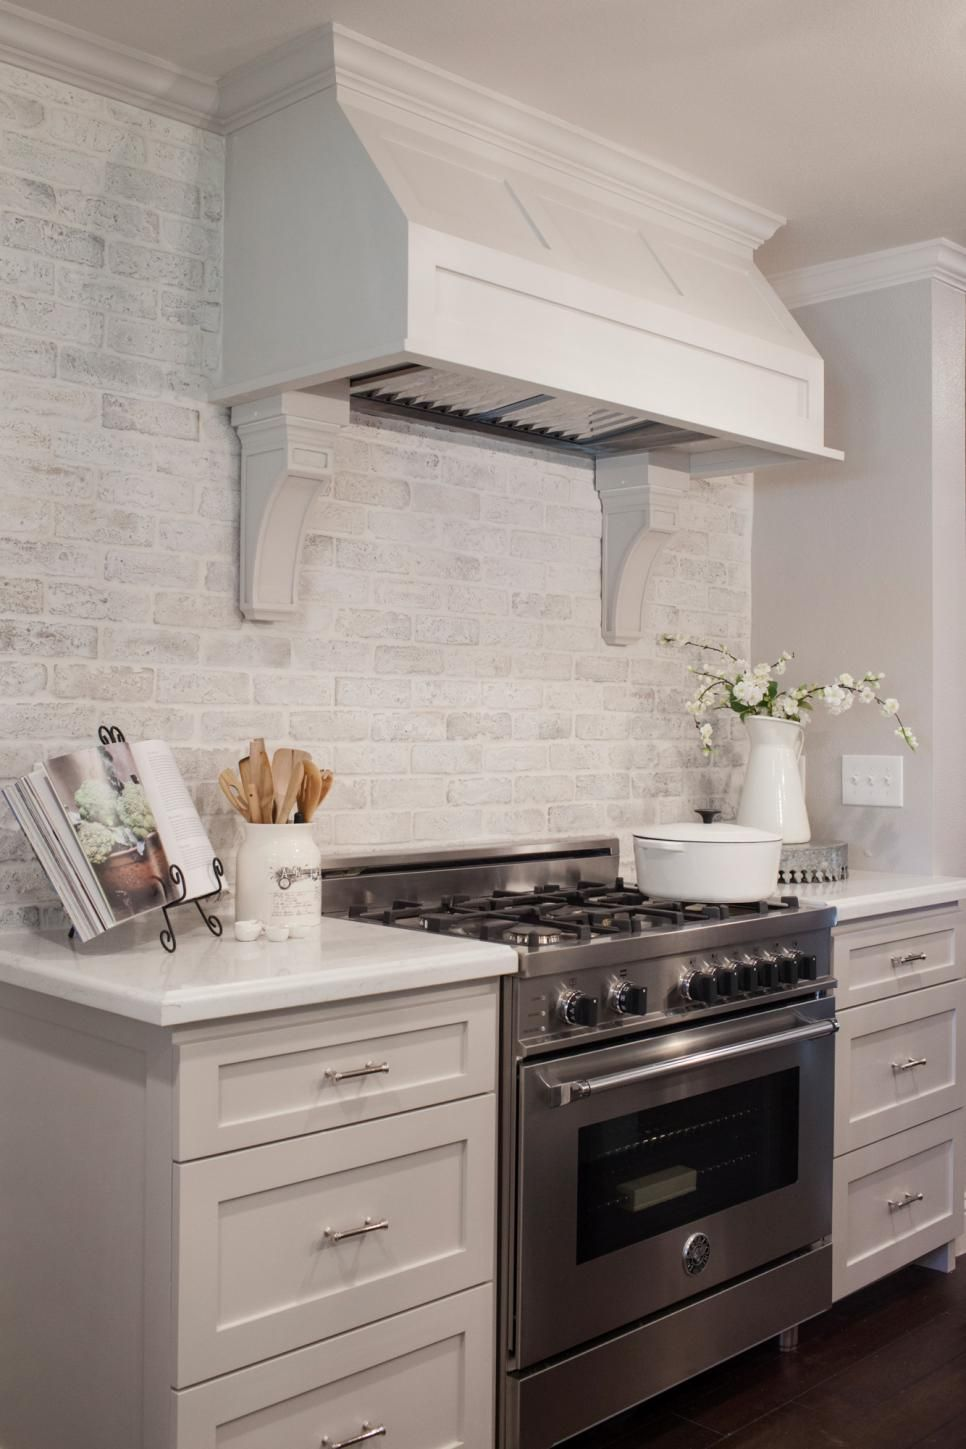 Hgtv fixer upper kitchen makeovers - Fixer Upper A Fresh Update For A 1962 Shingle Shack Countertops Cabinets And Search